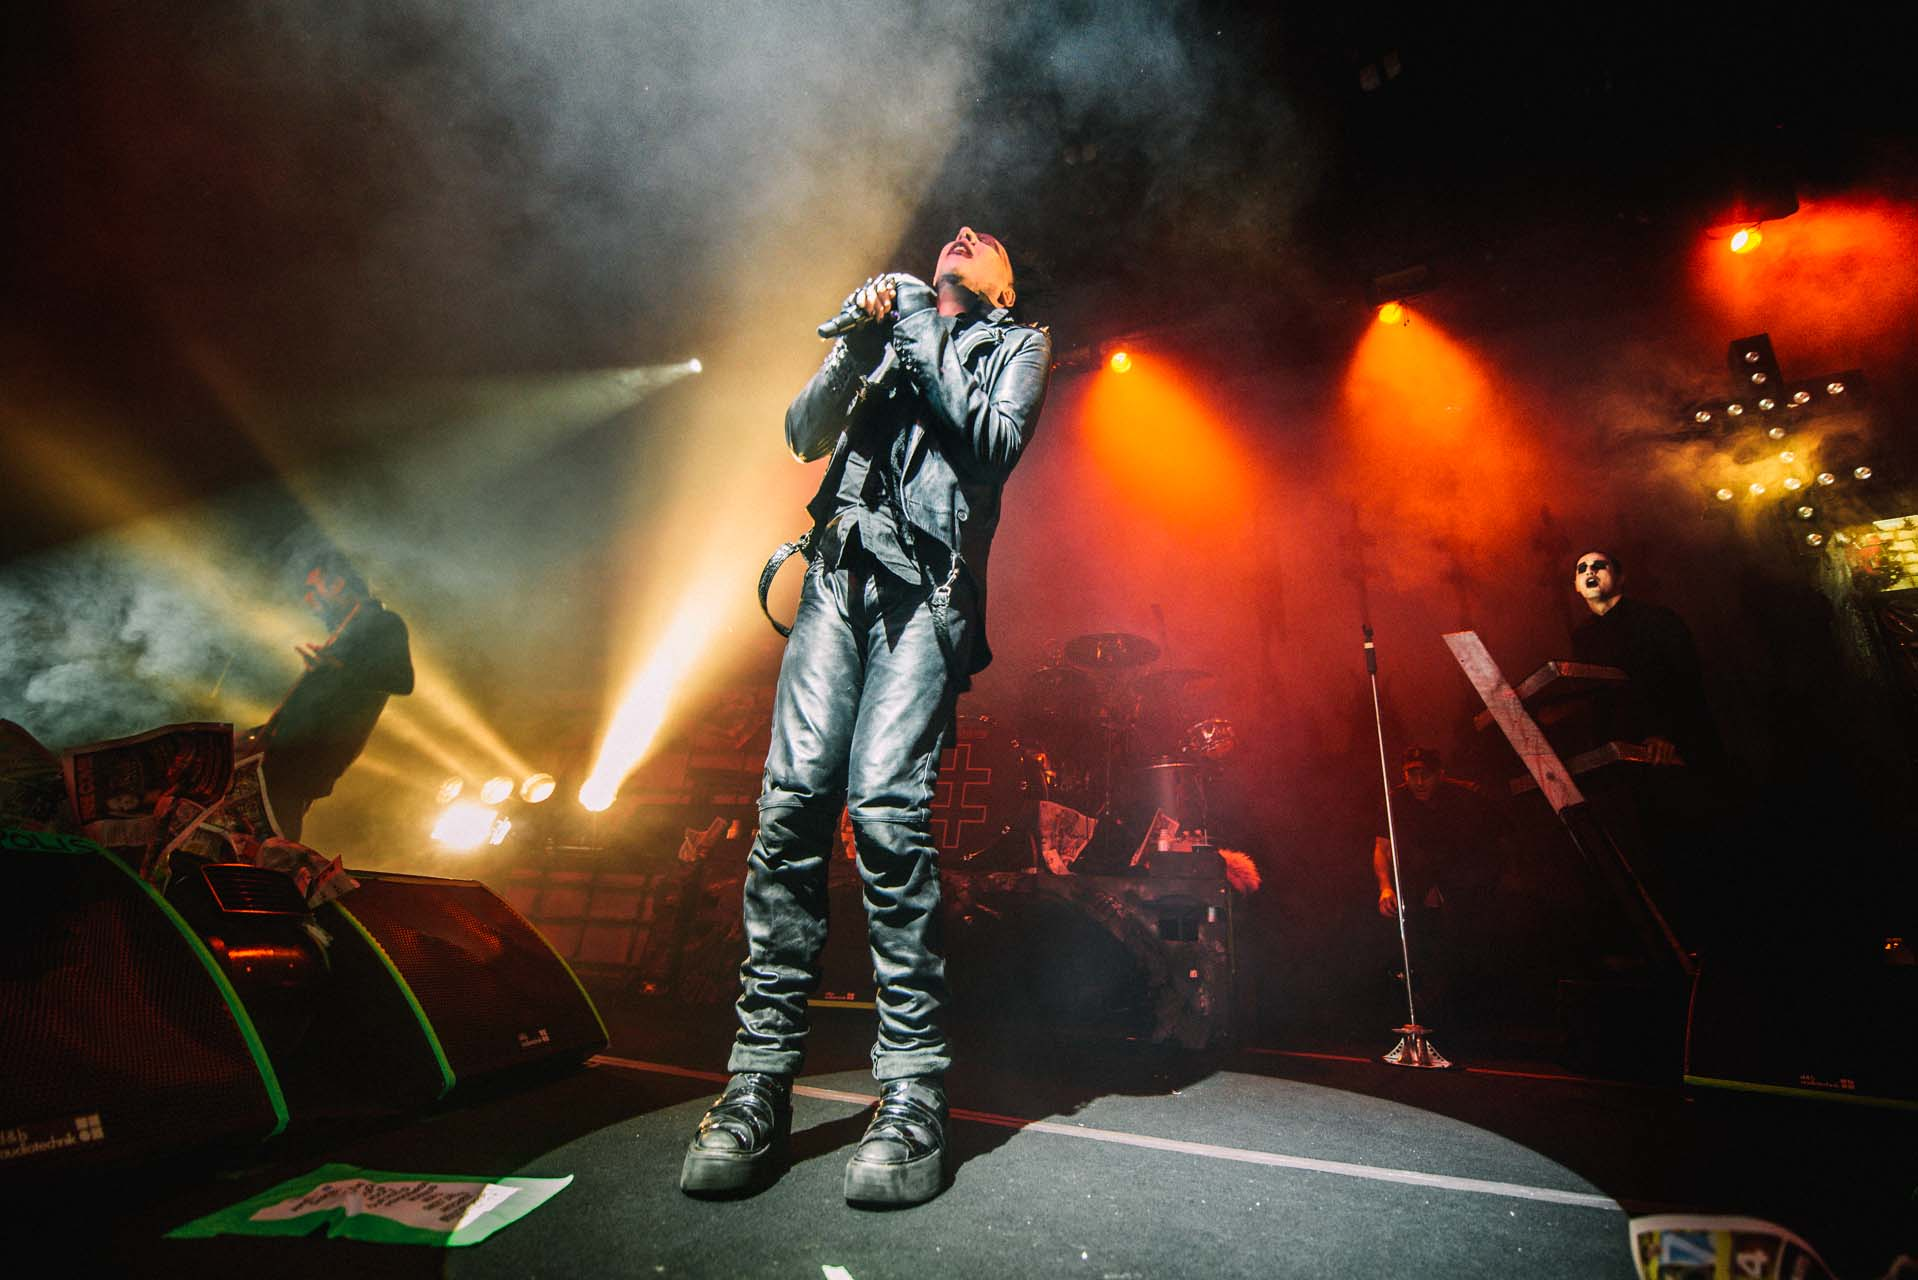 marilyn_manson_live_egyptian_room_indianapolis_2013-23